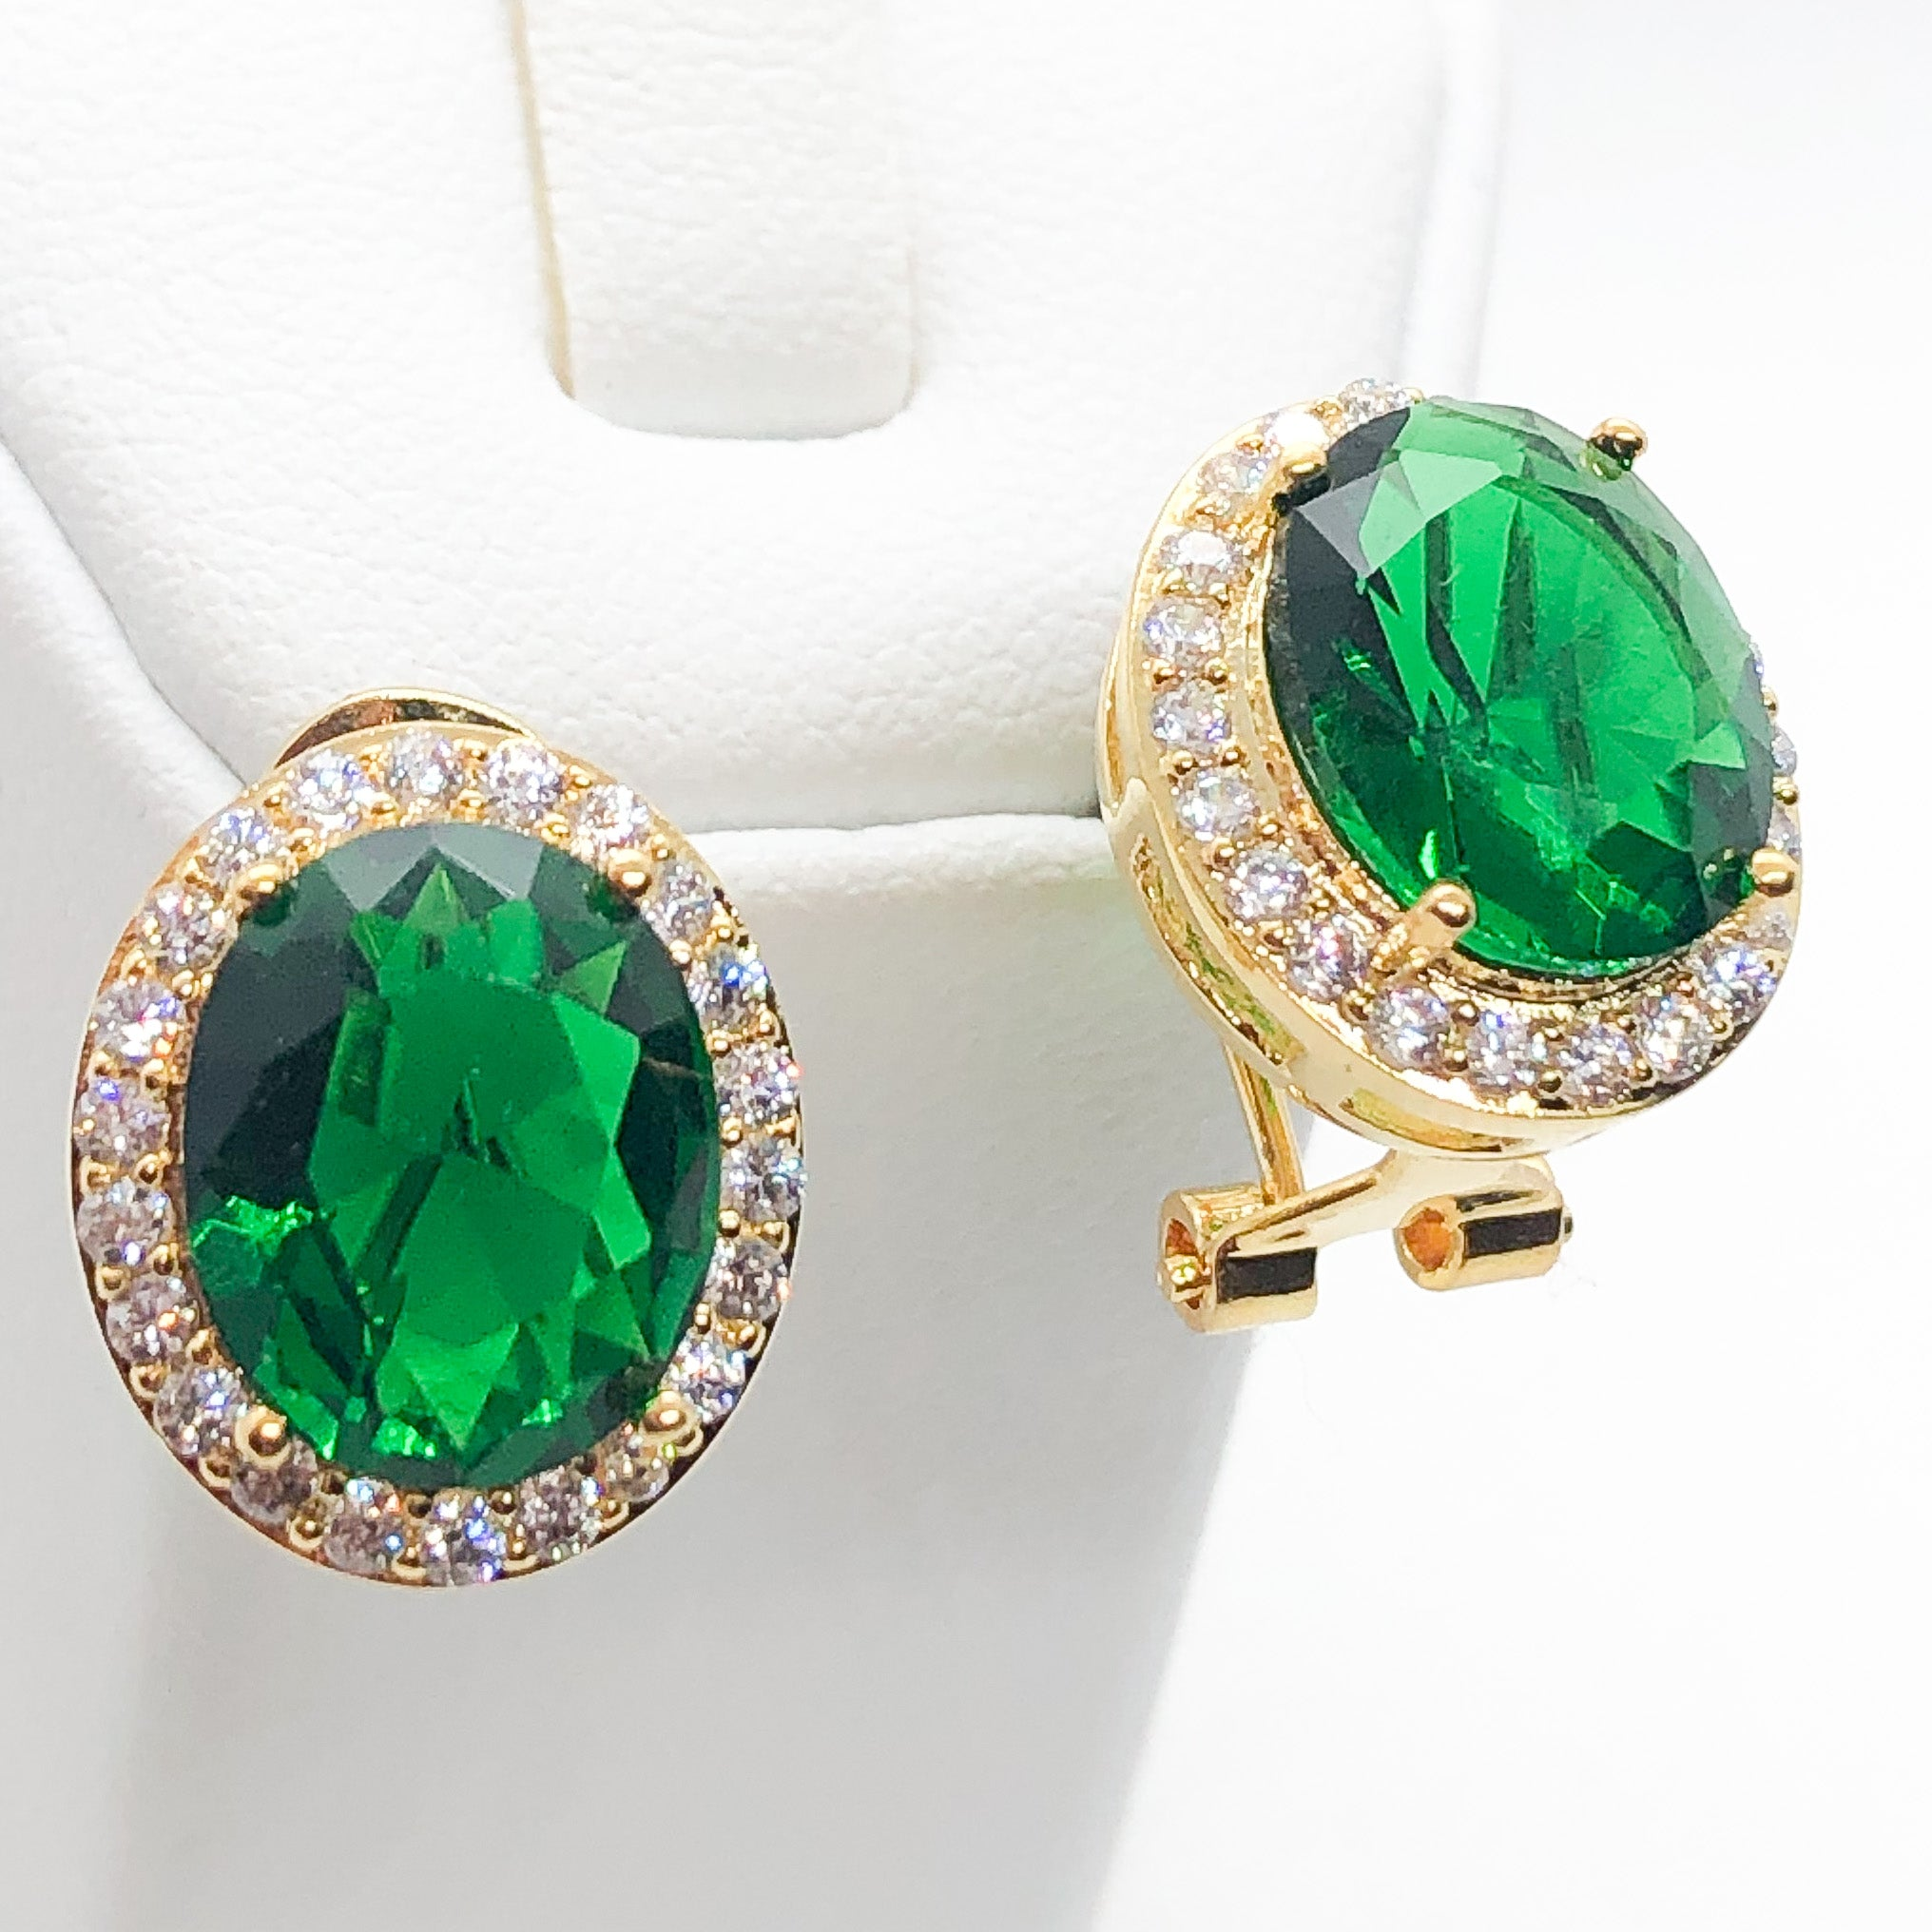 ID: E1448A Women Jewelry 18K Yellow Gold GF Emerald with Clear Round Stones Earrings Fashion Lady Party Stud